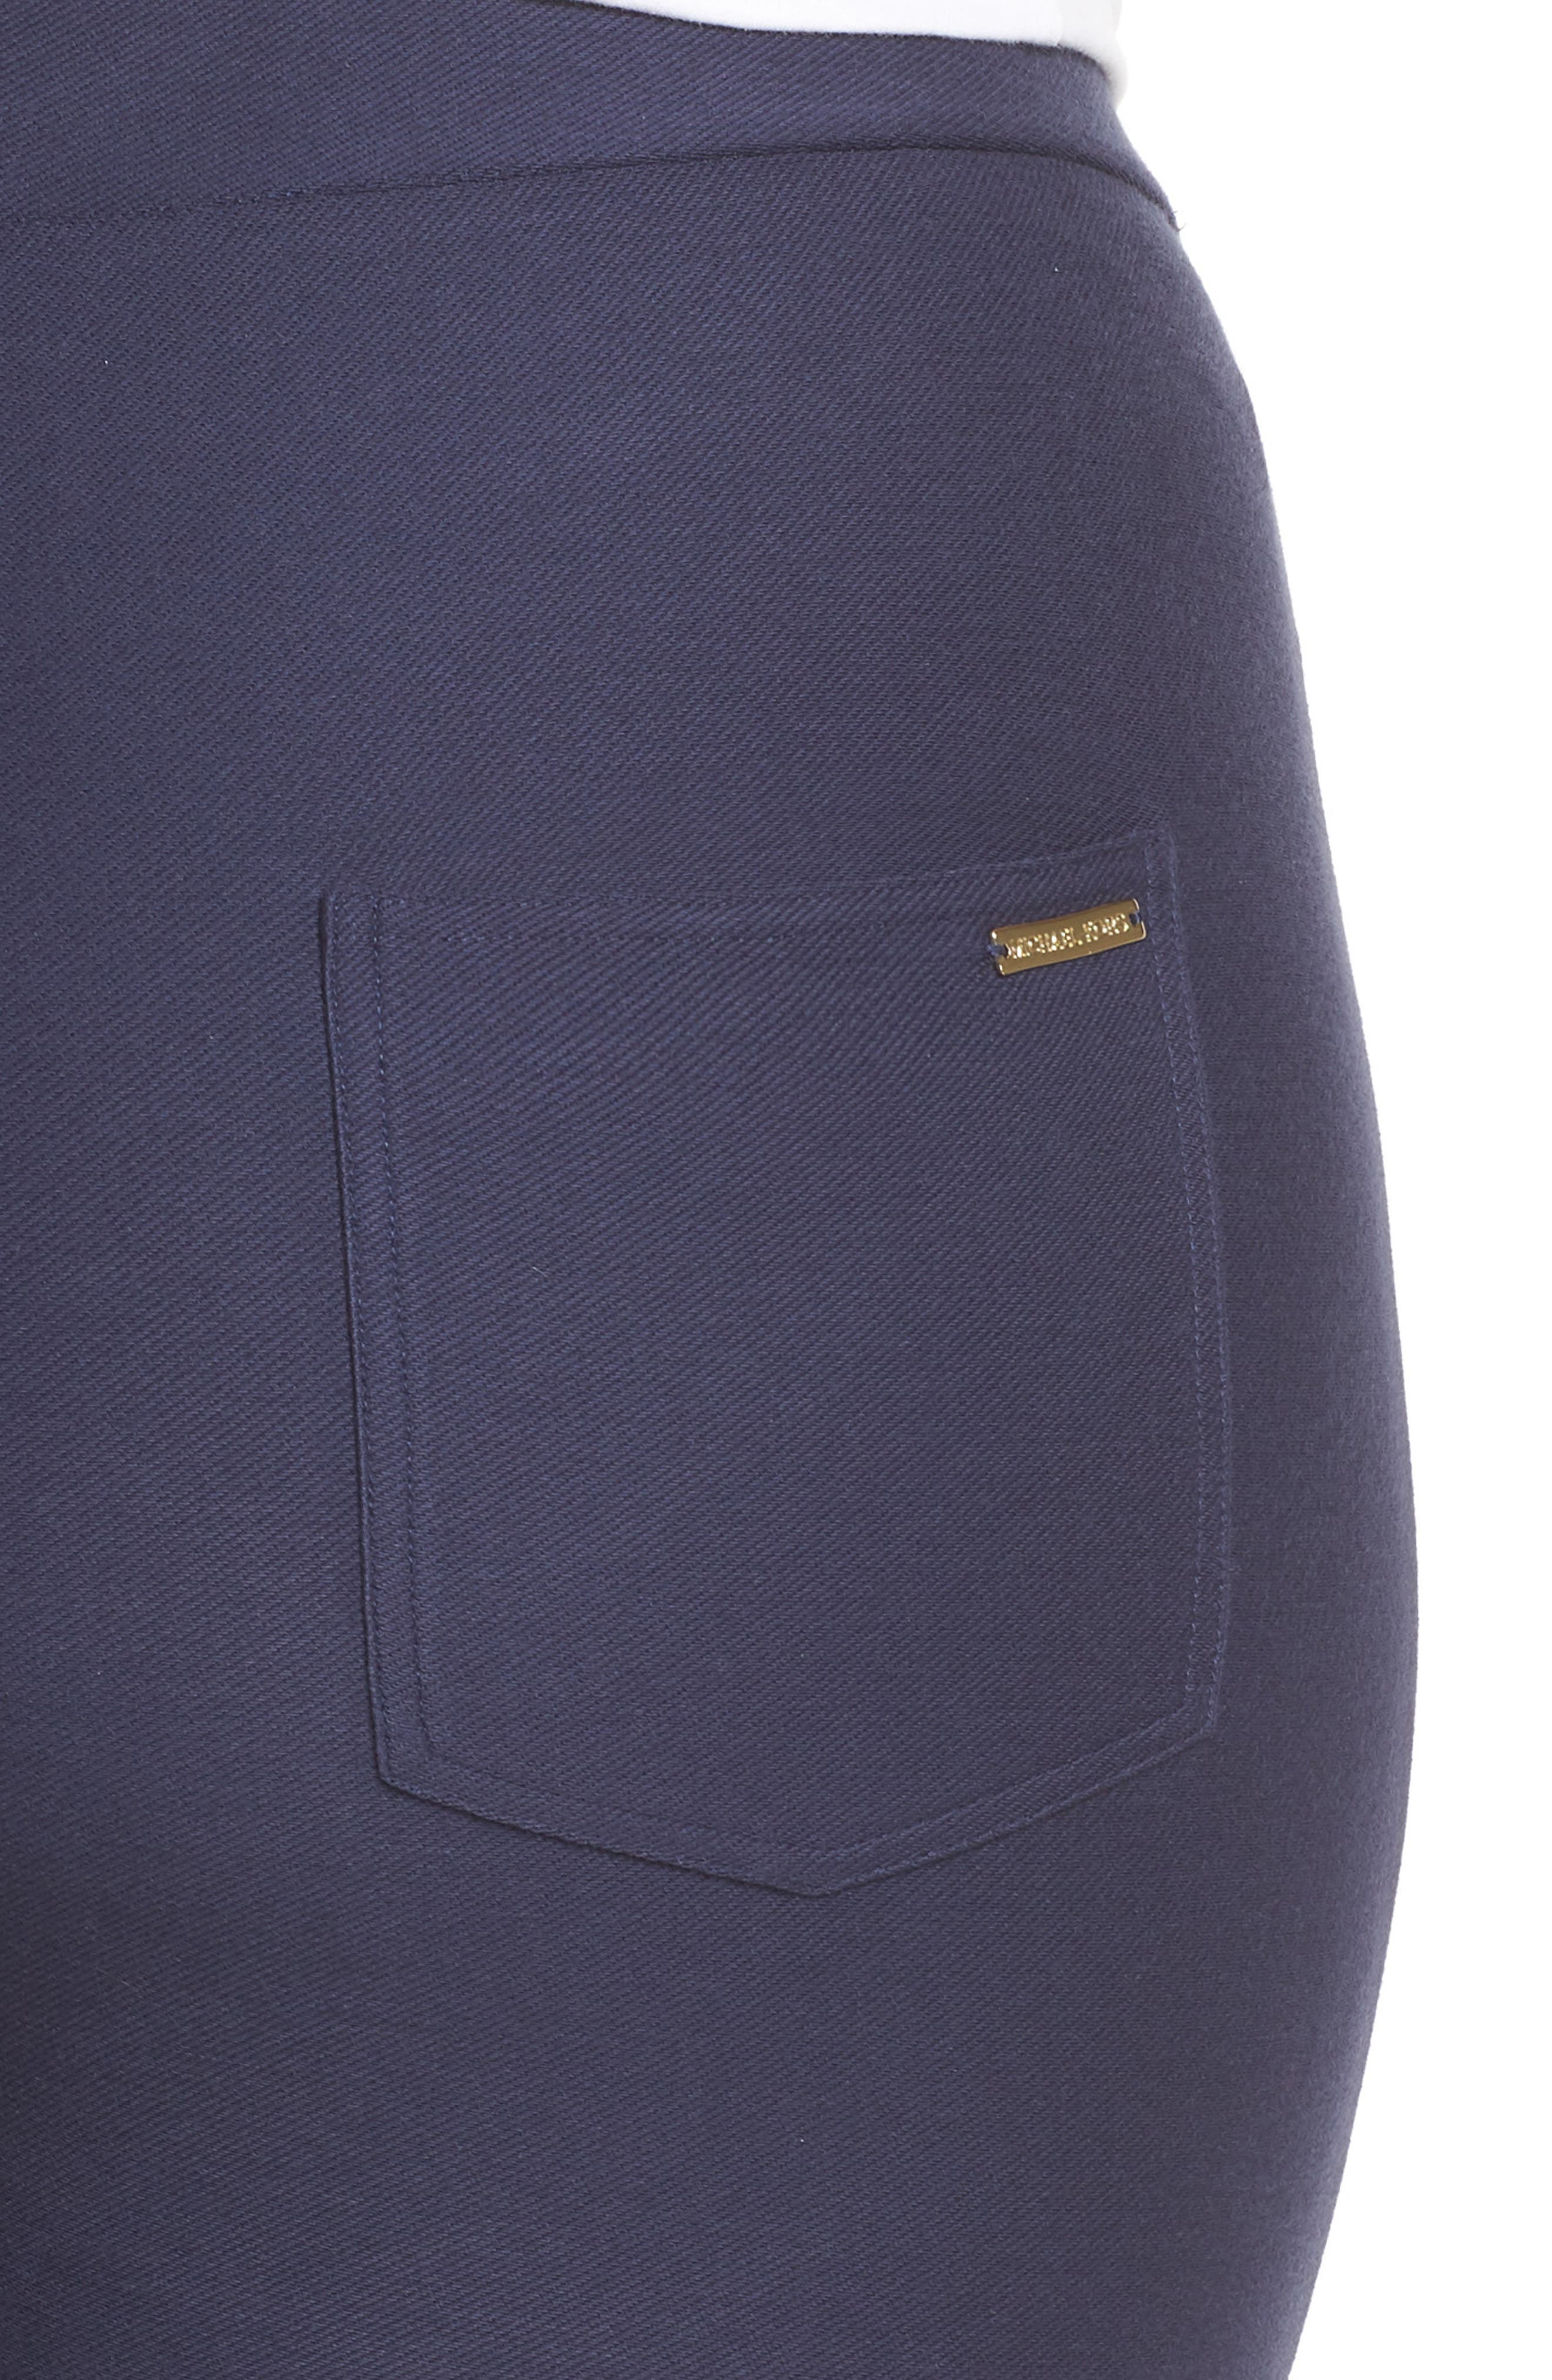 Embellished Cuff Leggings,                             Alternate thumbnail 4, color,                             TRUE NAVY